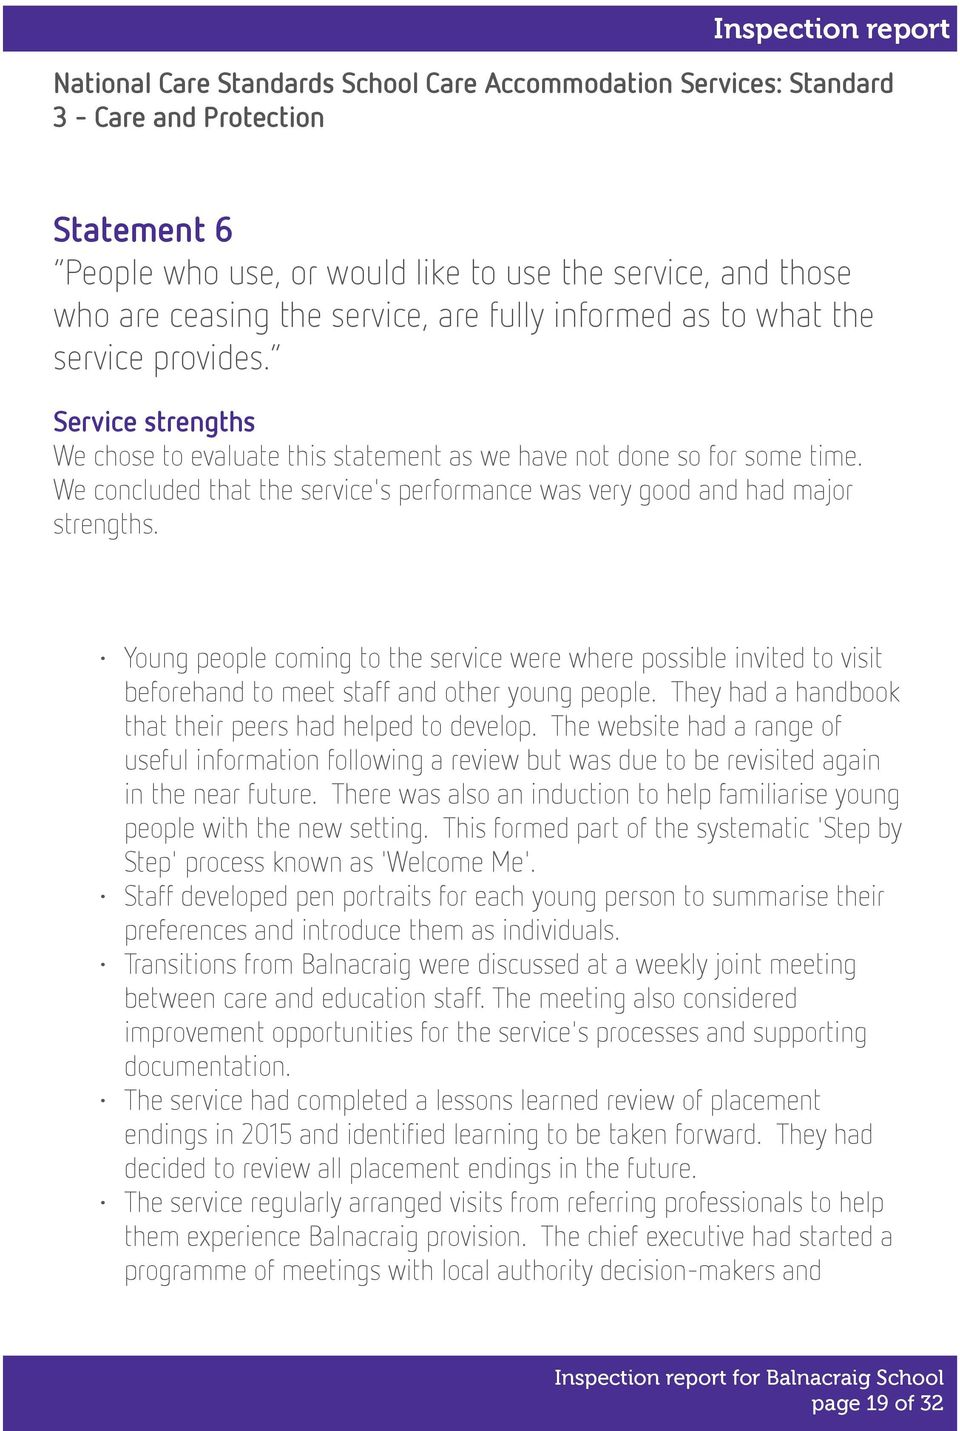 We concluded that the service's performance was very good and had major strengths.